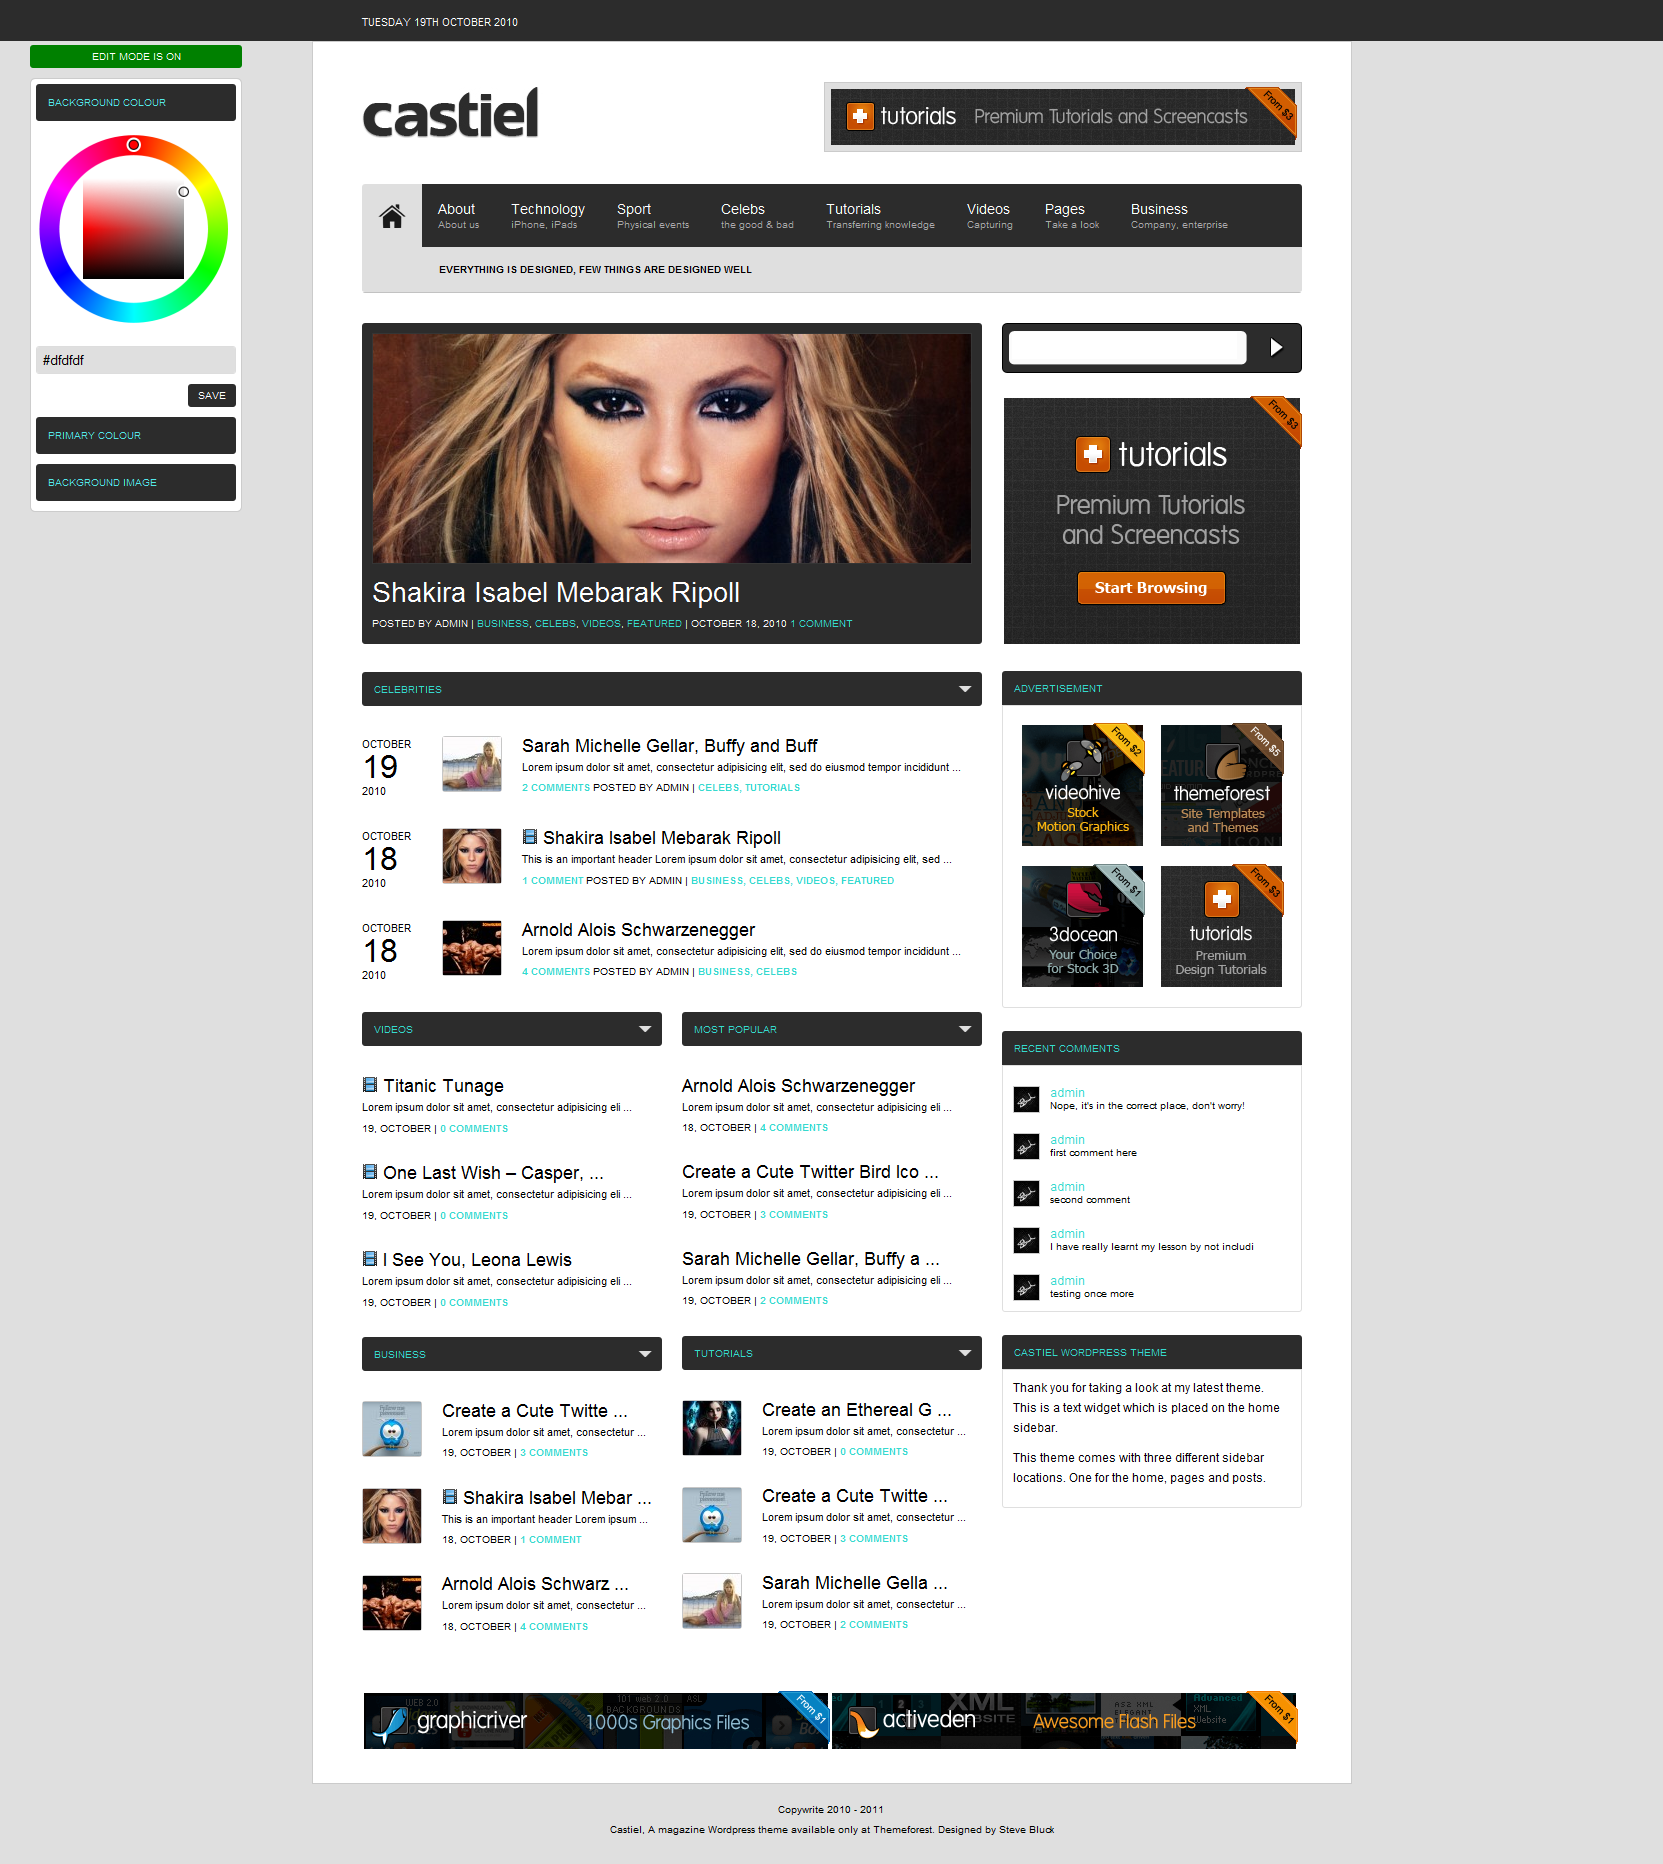 Castiel A Magazine Style Wordpress Theme Graphicsbeam